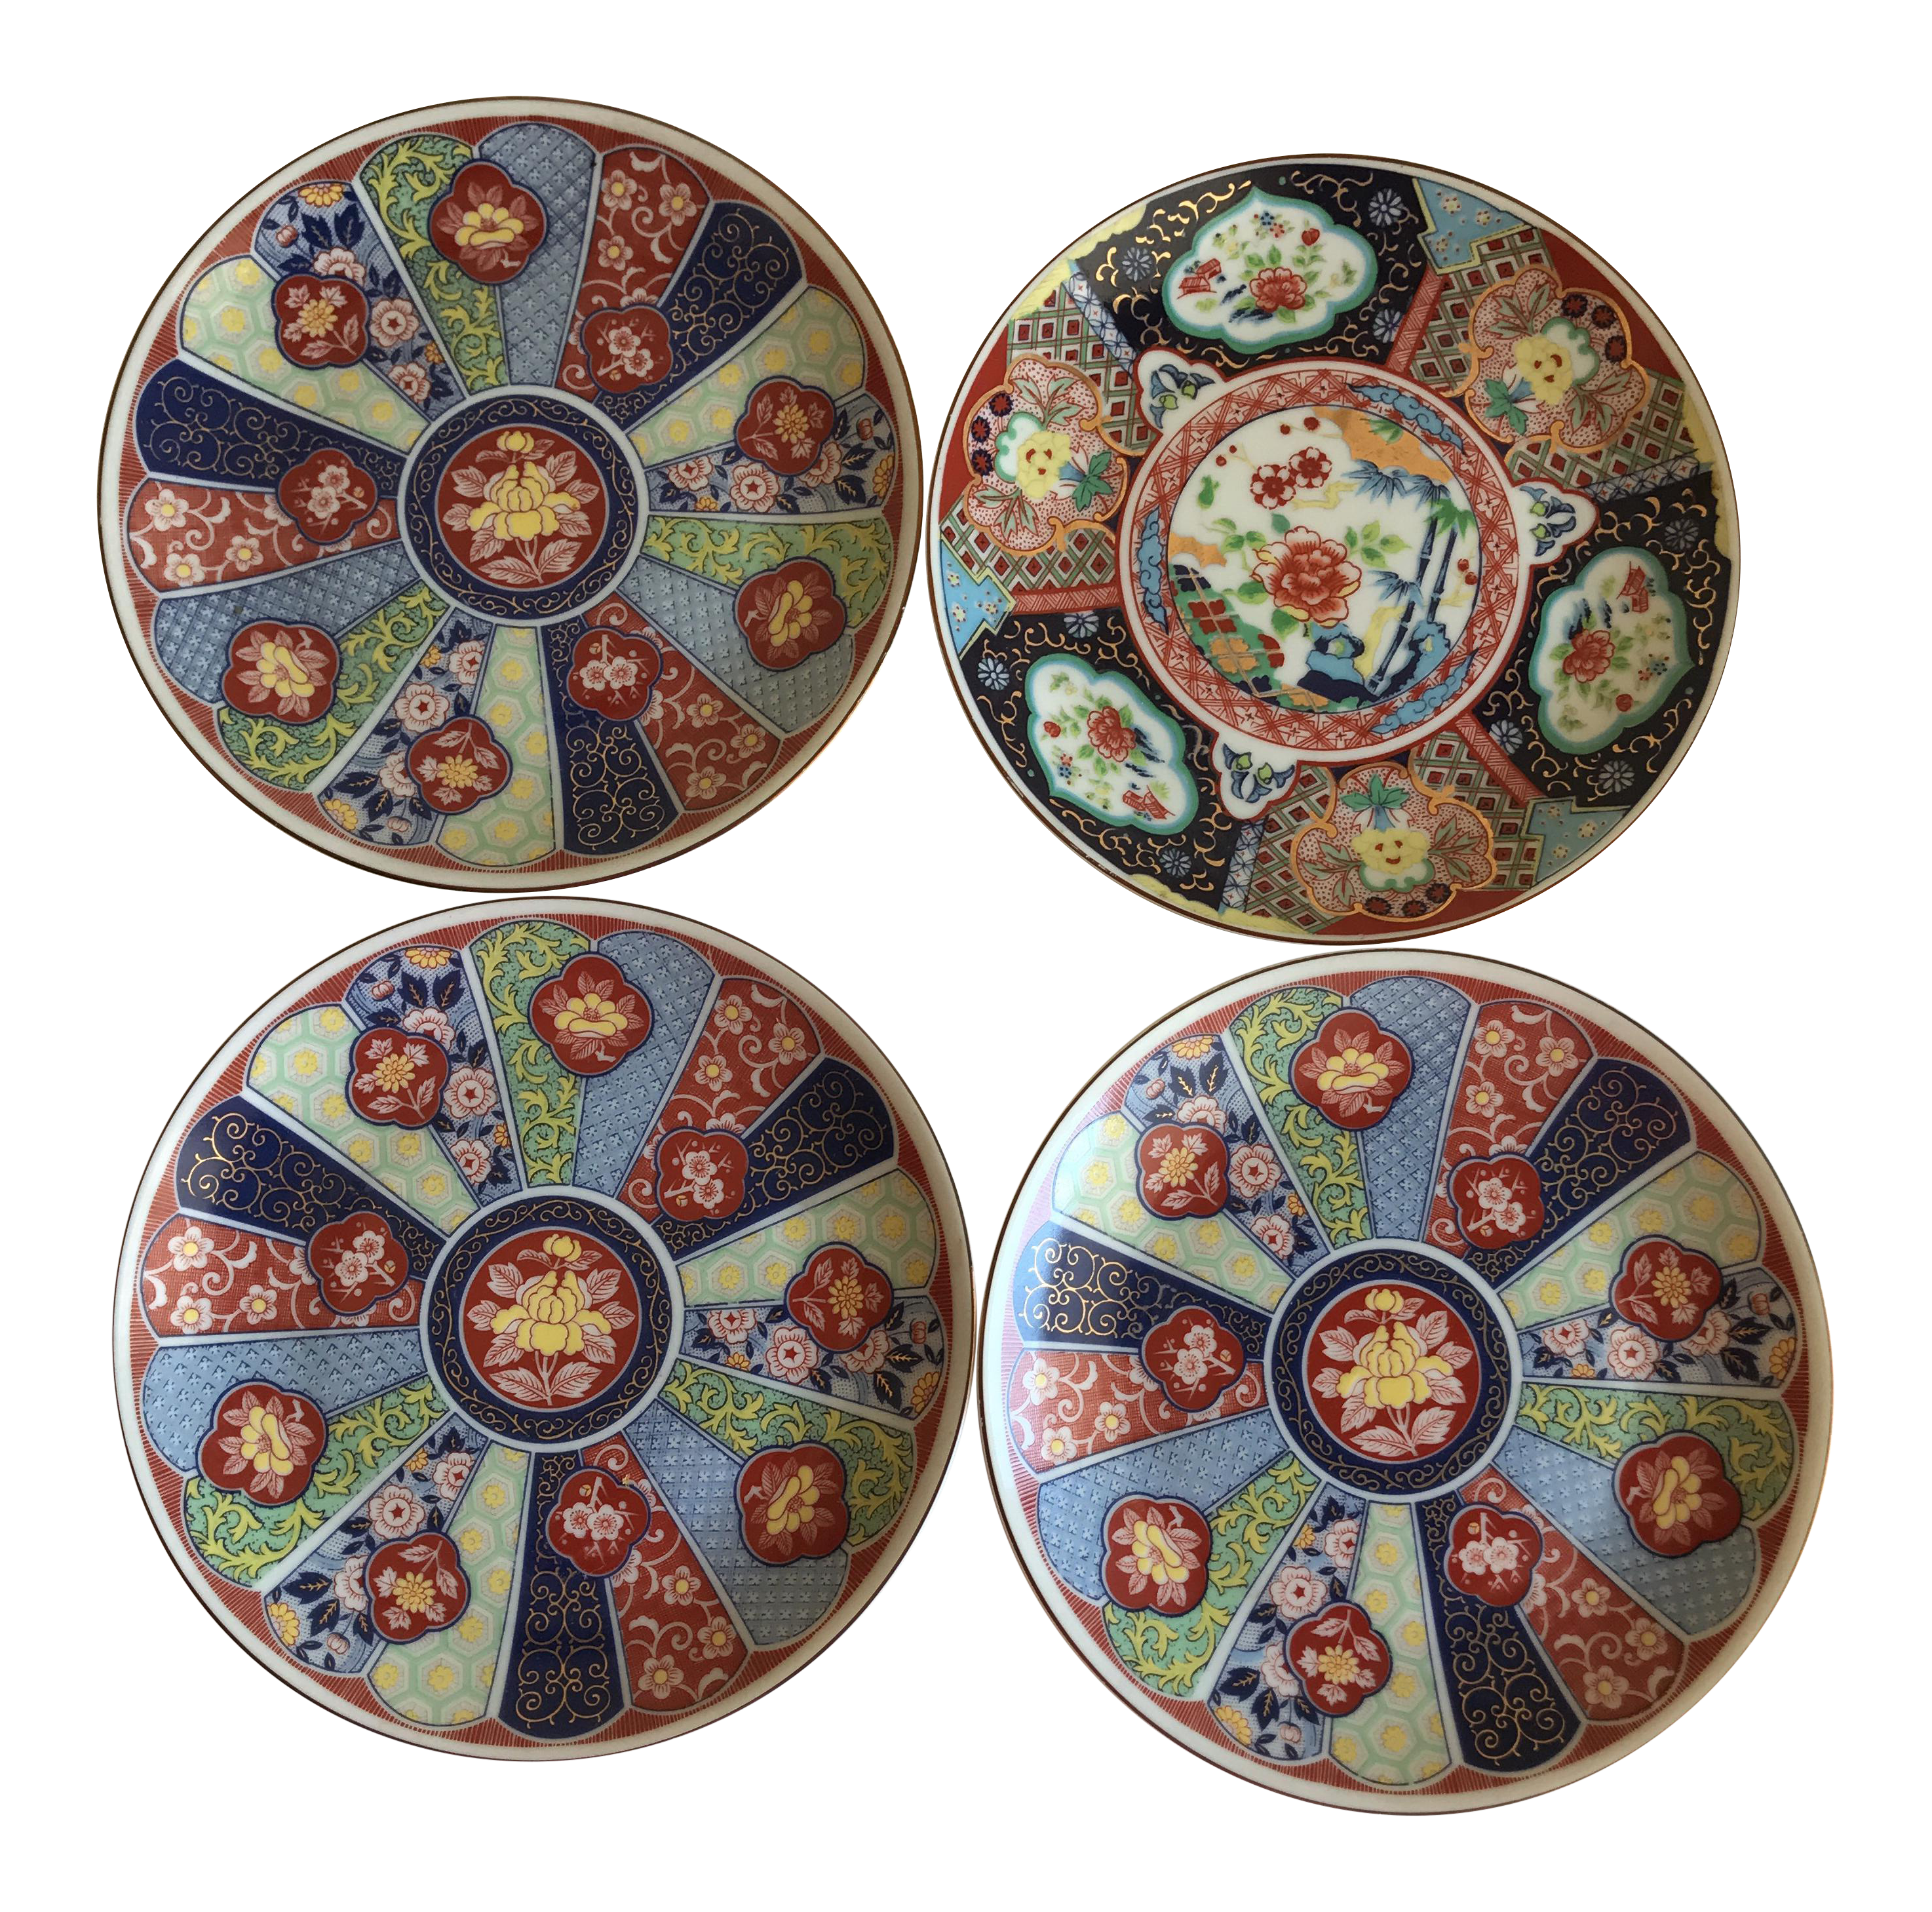 Lotus Floral Japanese Plates - Set of 4  sc 1 st  Pinterest & Lotus Floral Japanese Plates - Set of 4 | Lotus Japanese and Wall decor